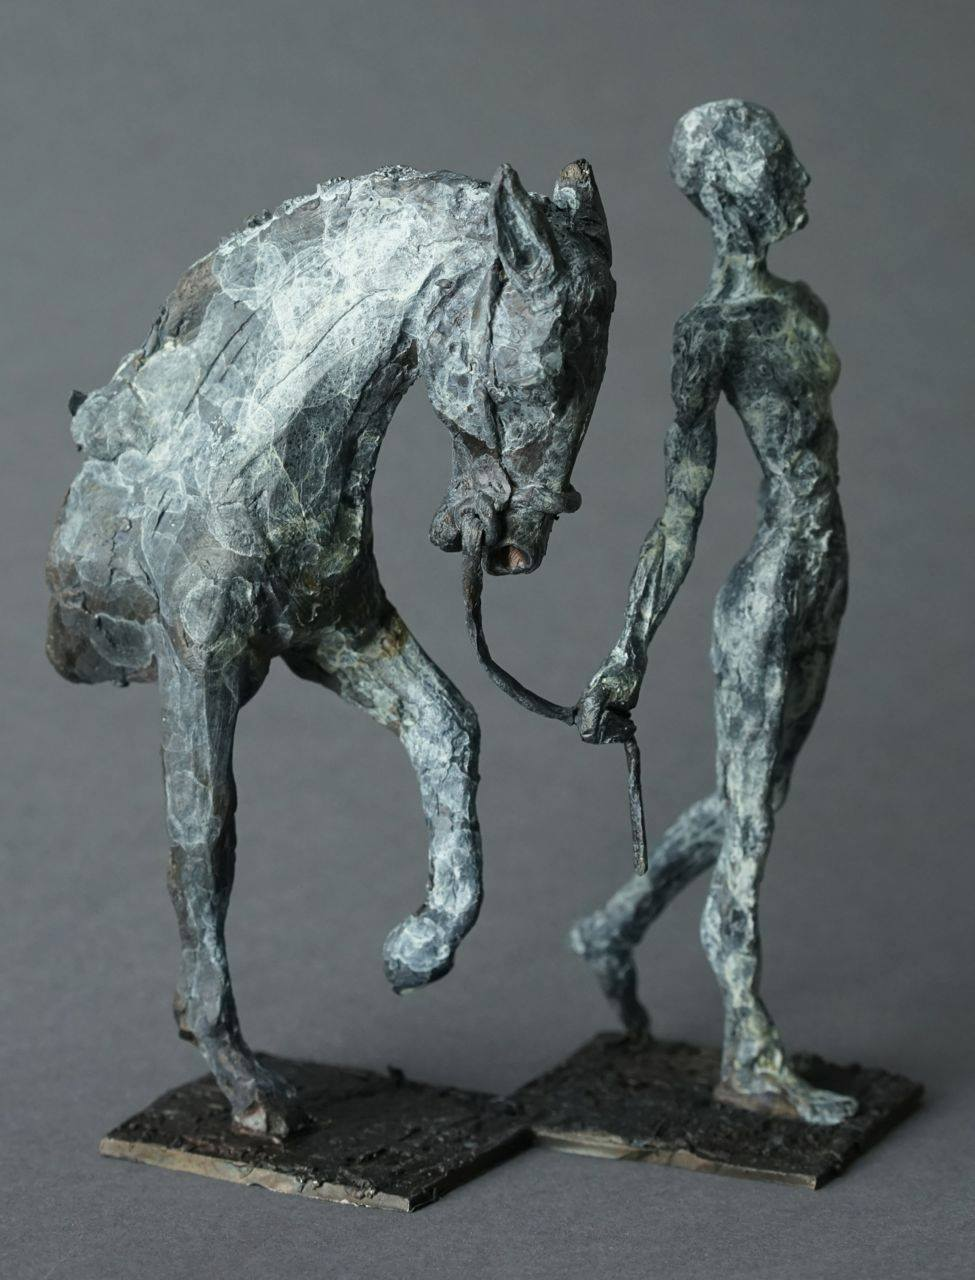 Philip Wakeham - Bronze Sculpture from the South West of England